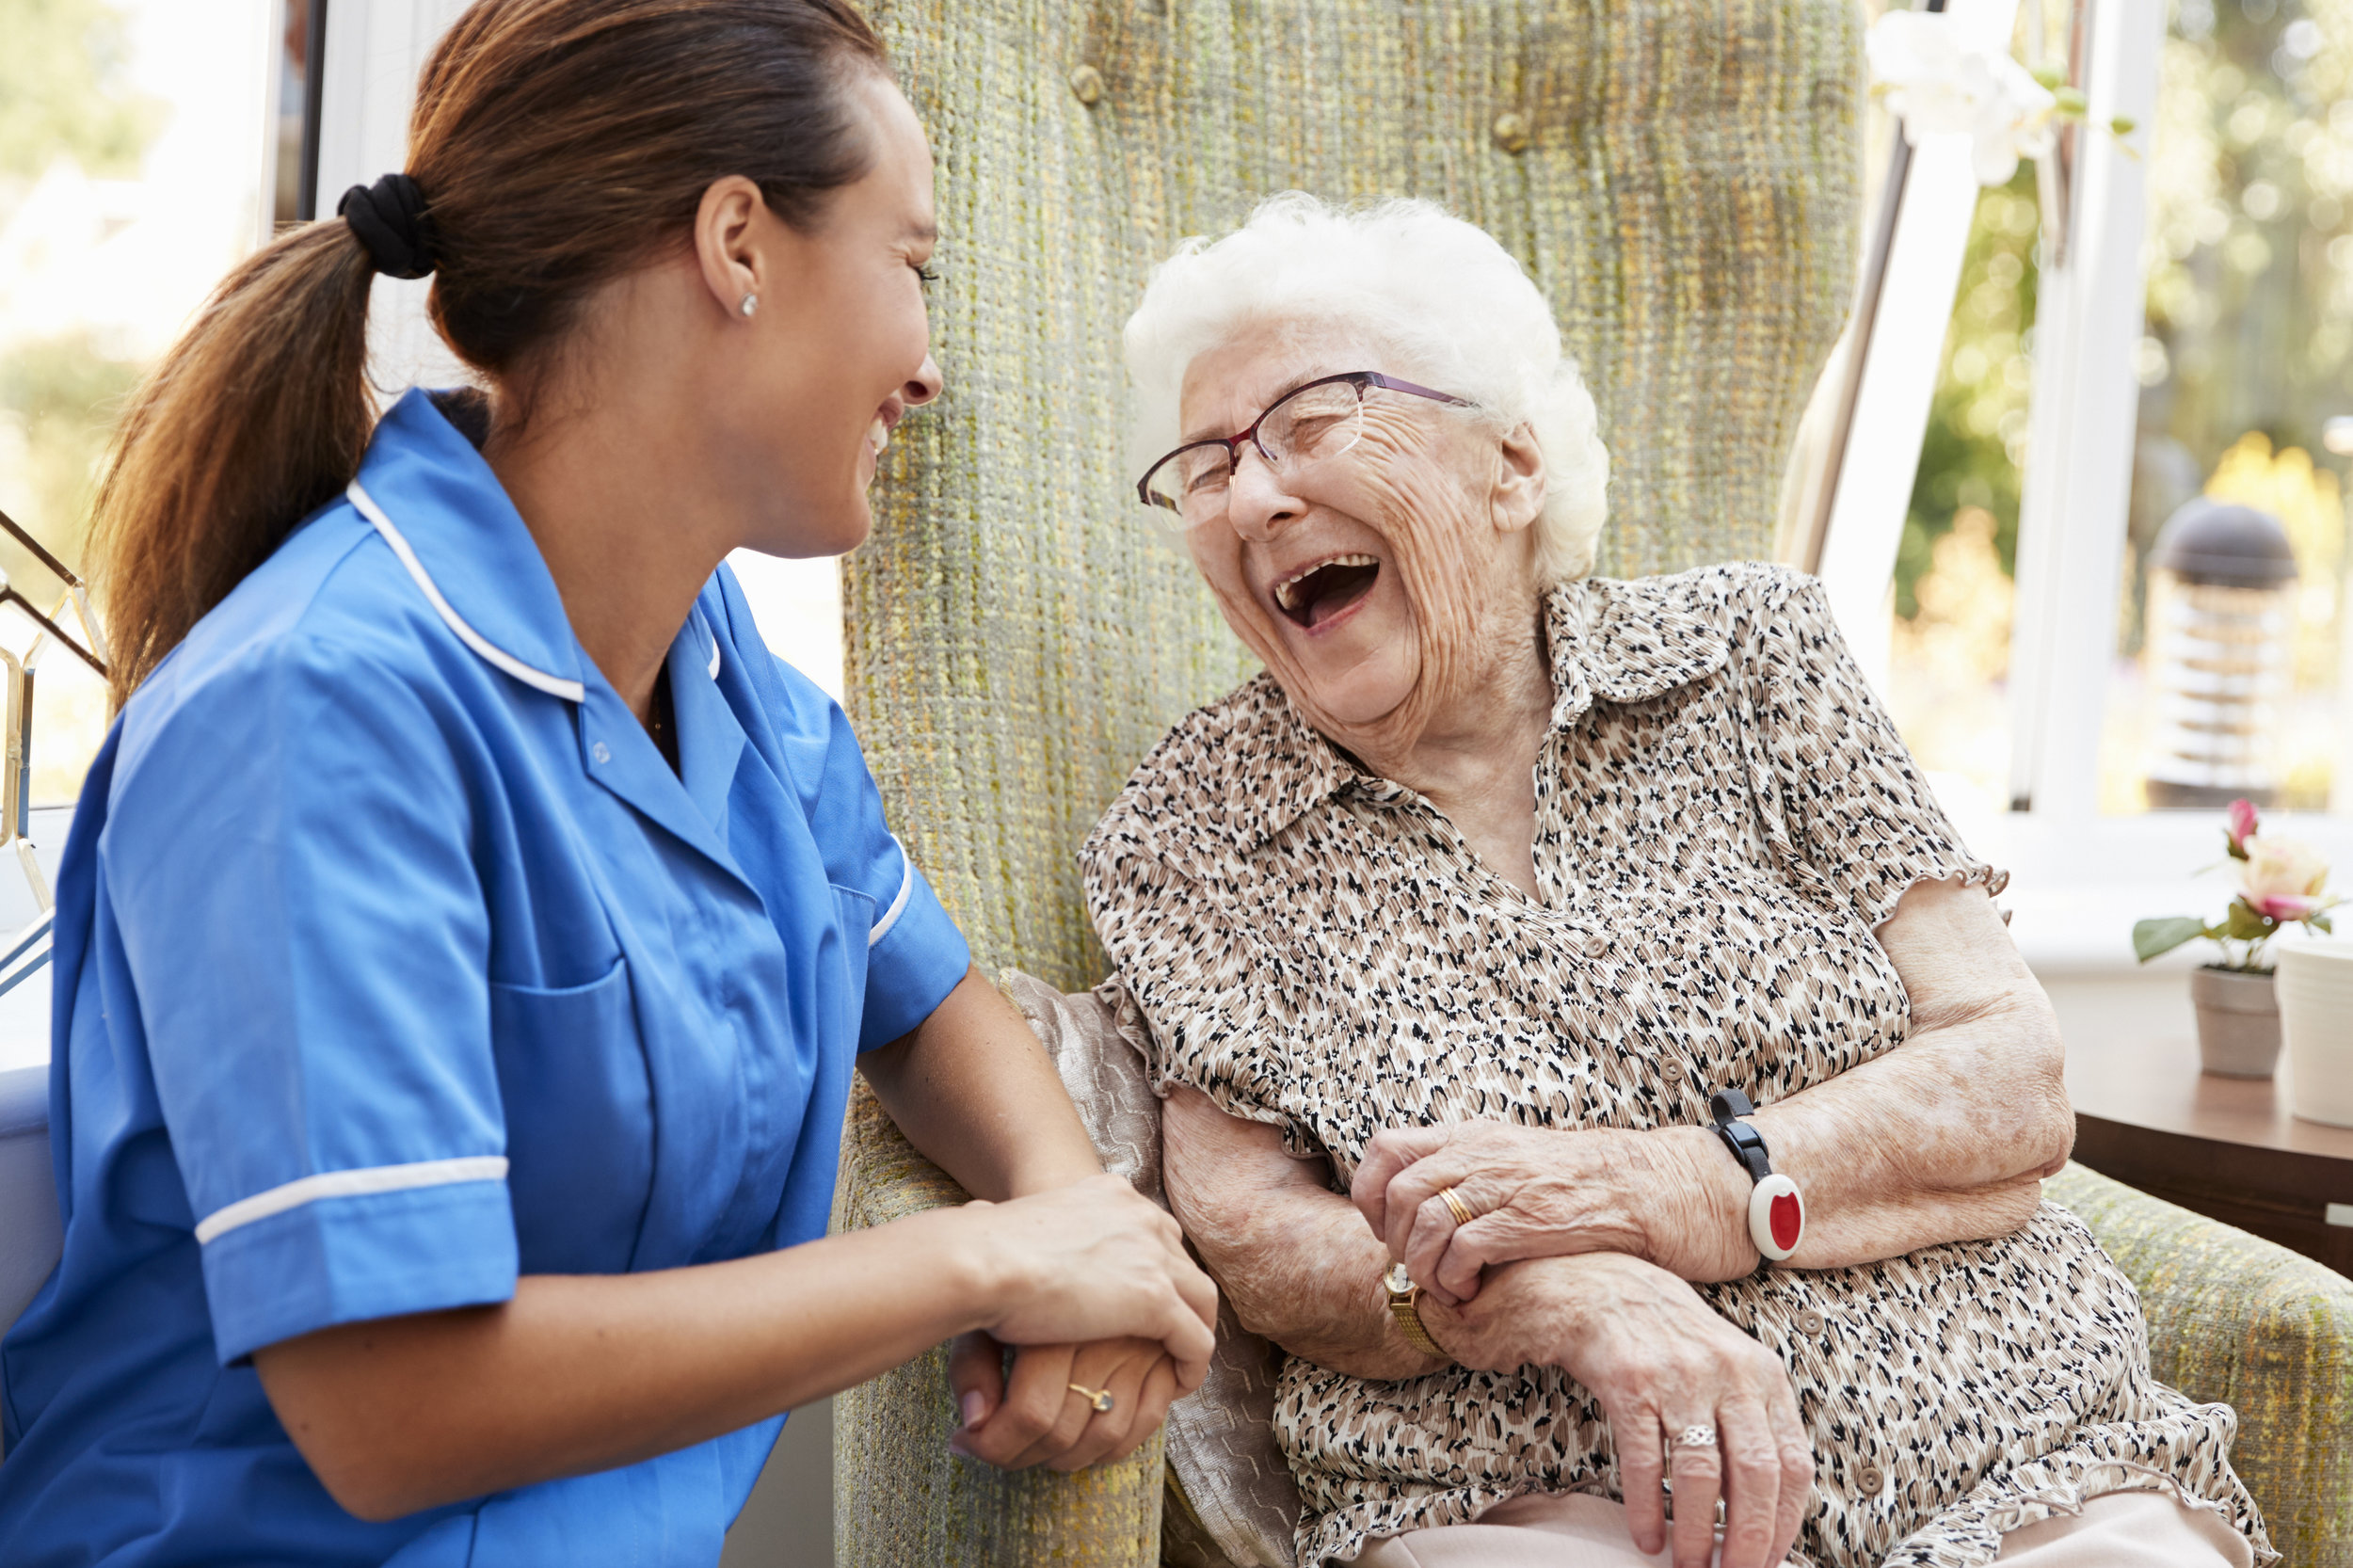 assisted living community tulsa oklahoma oxford home healthcare tulsa oklahoma assisted living alternative.jpg